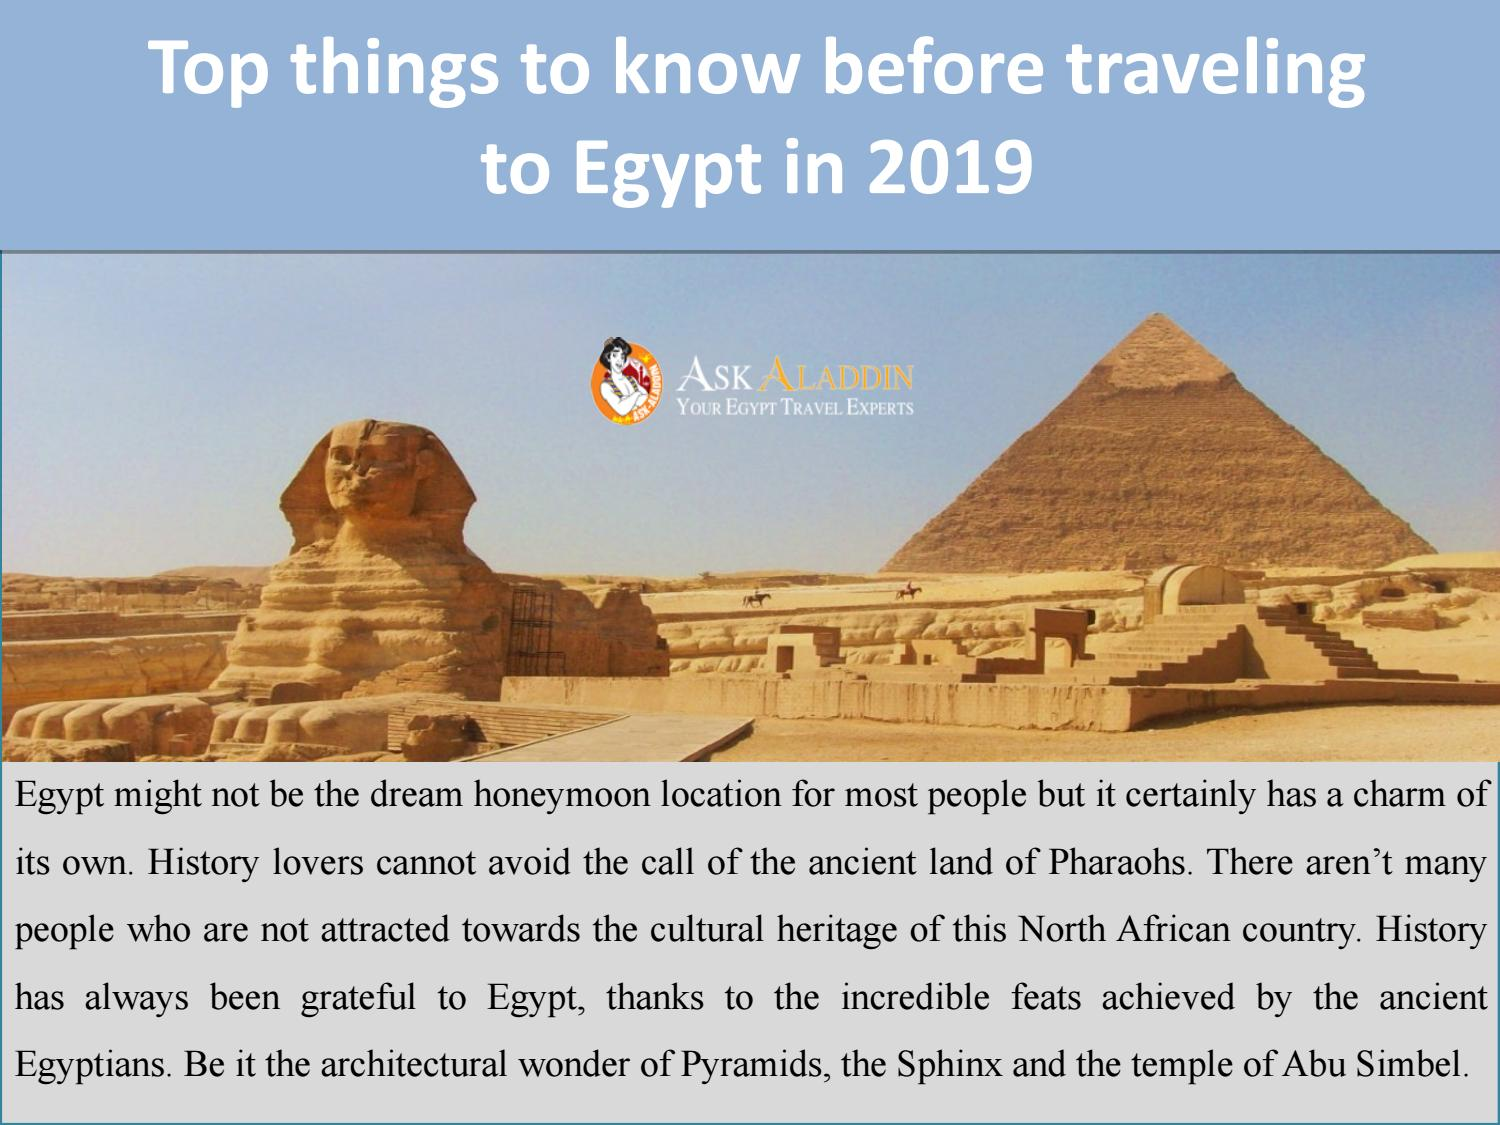 Top things to know before traveling to Egypt in 2019 by Ask